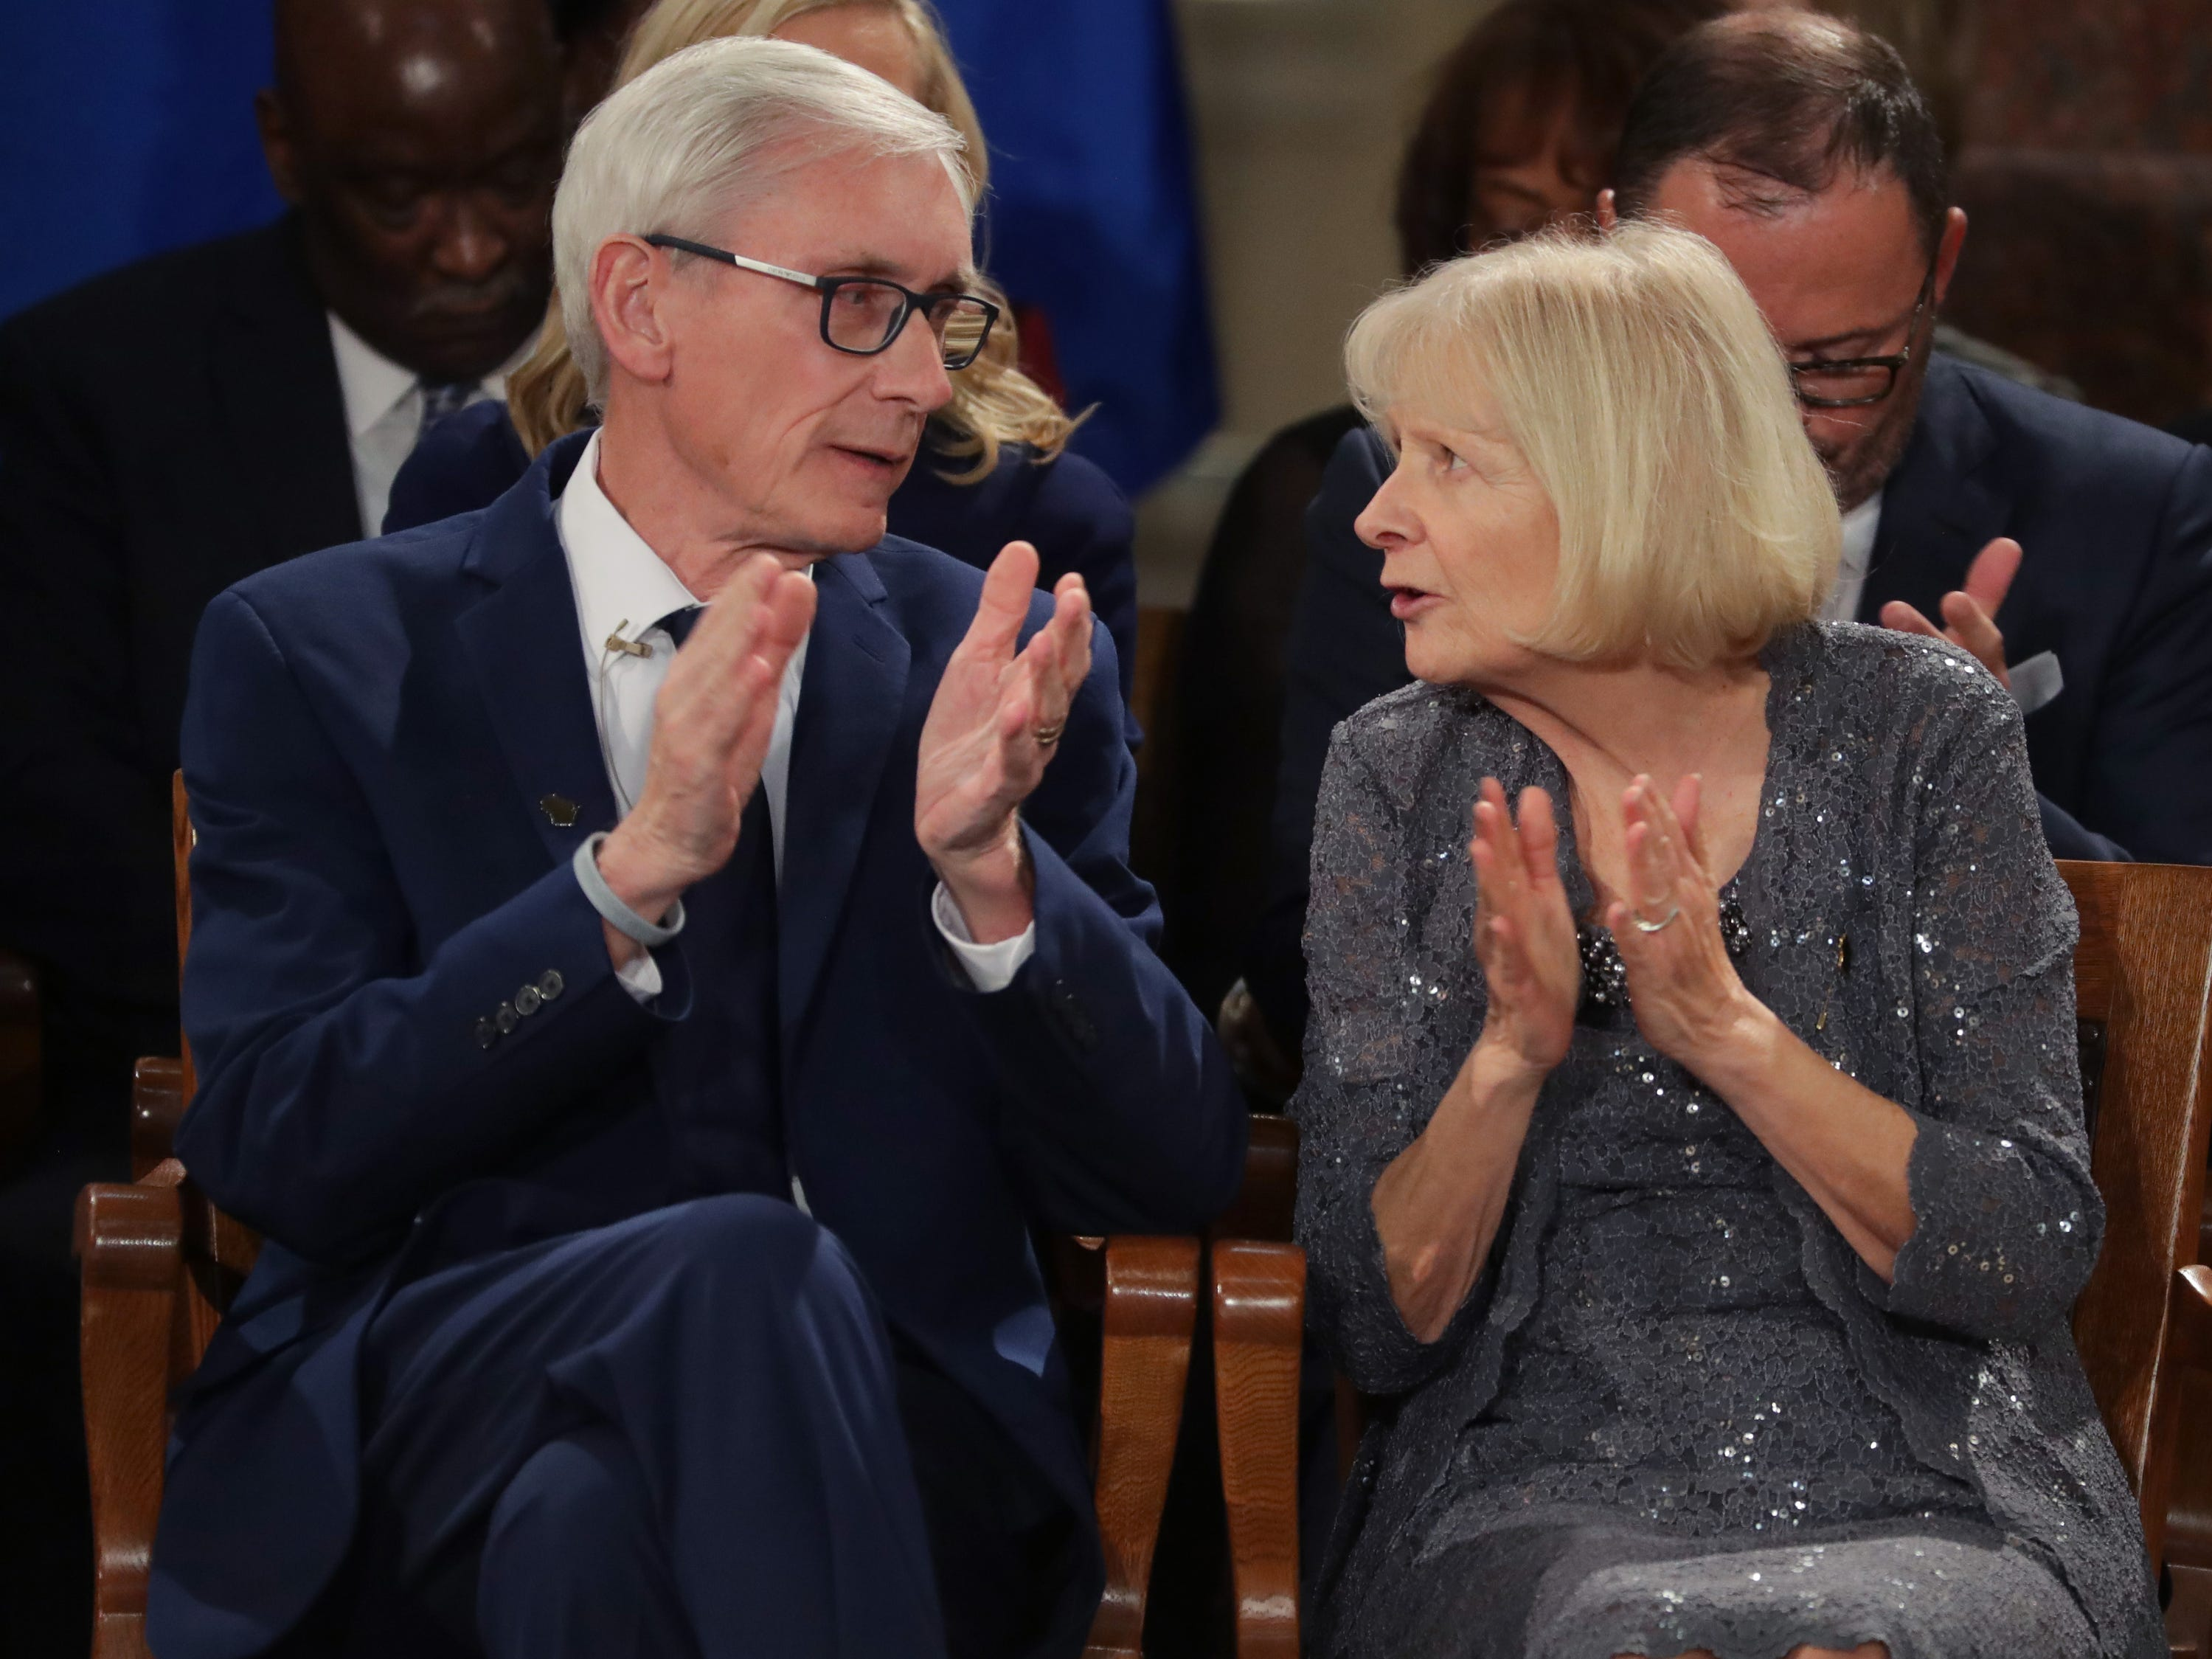 Incoming Gov. Tony Evers speaks to his wife, Kathy, during the inauguration.